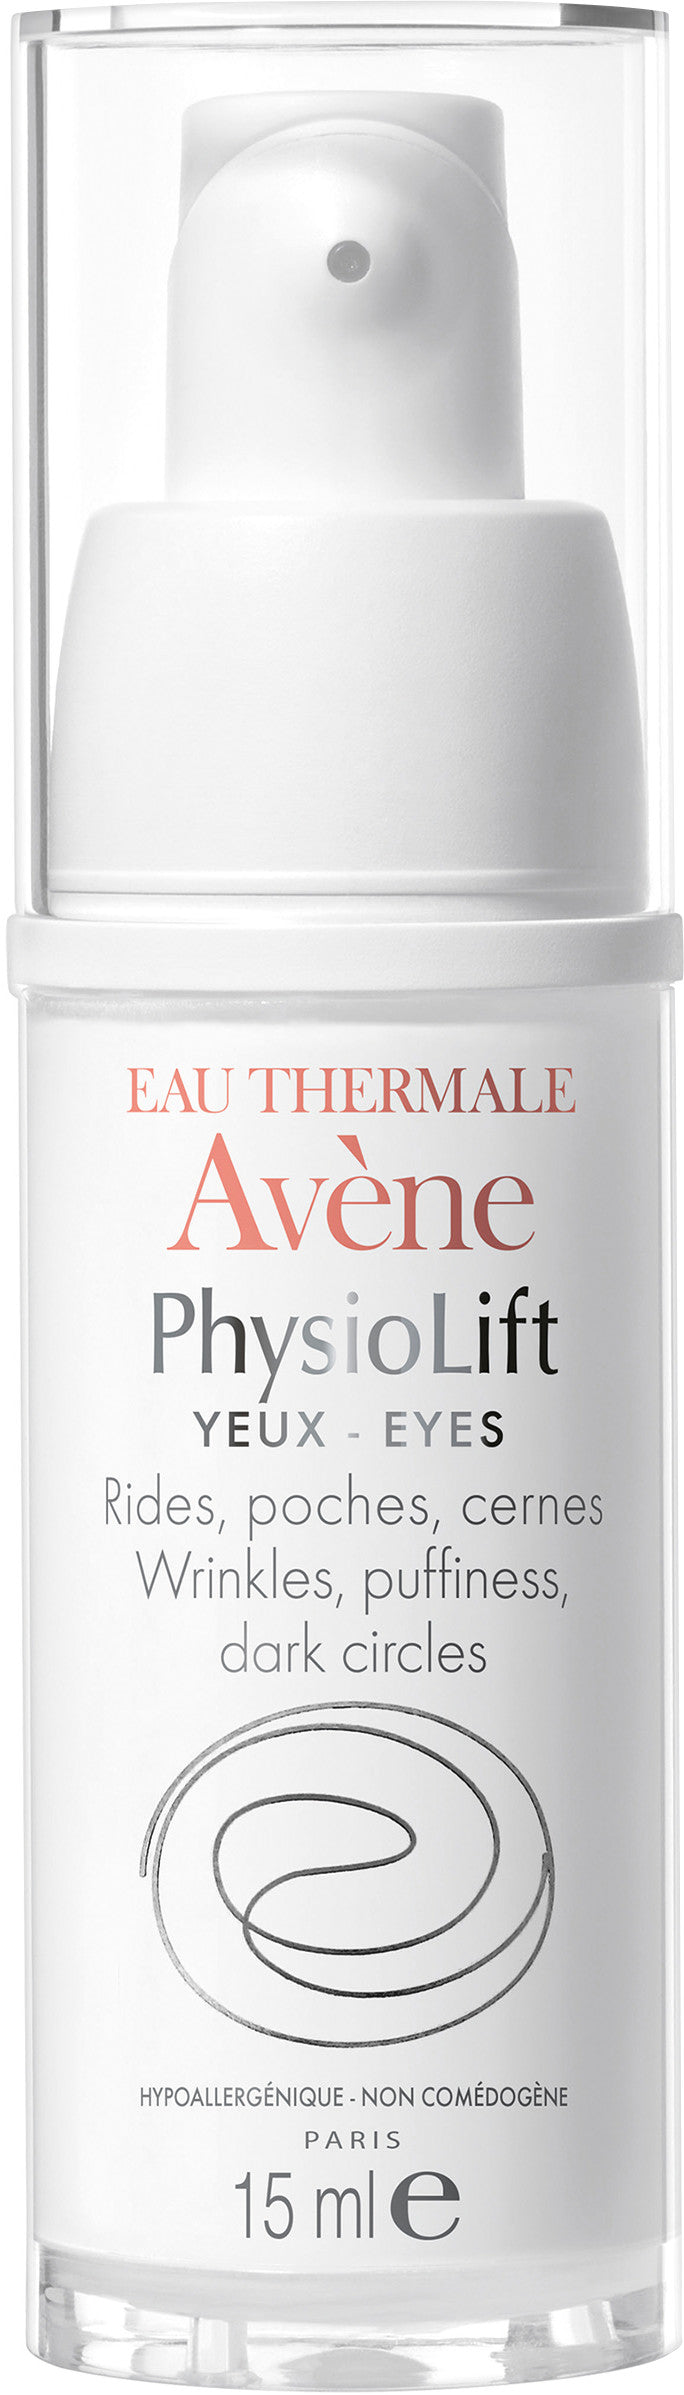 Avene Physiolift Eyes Eye Contour 15ml